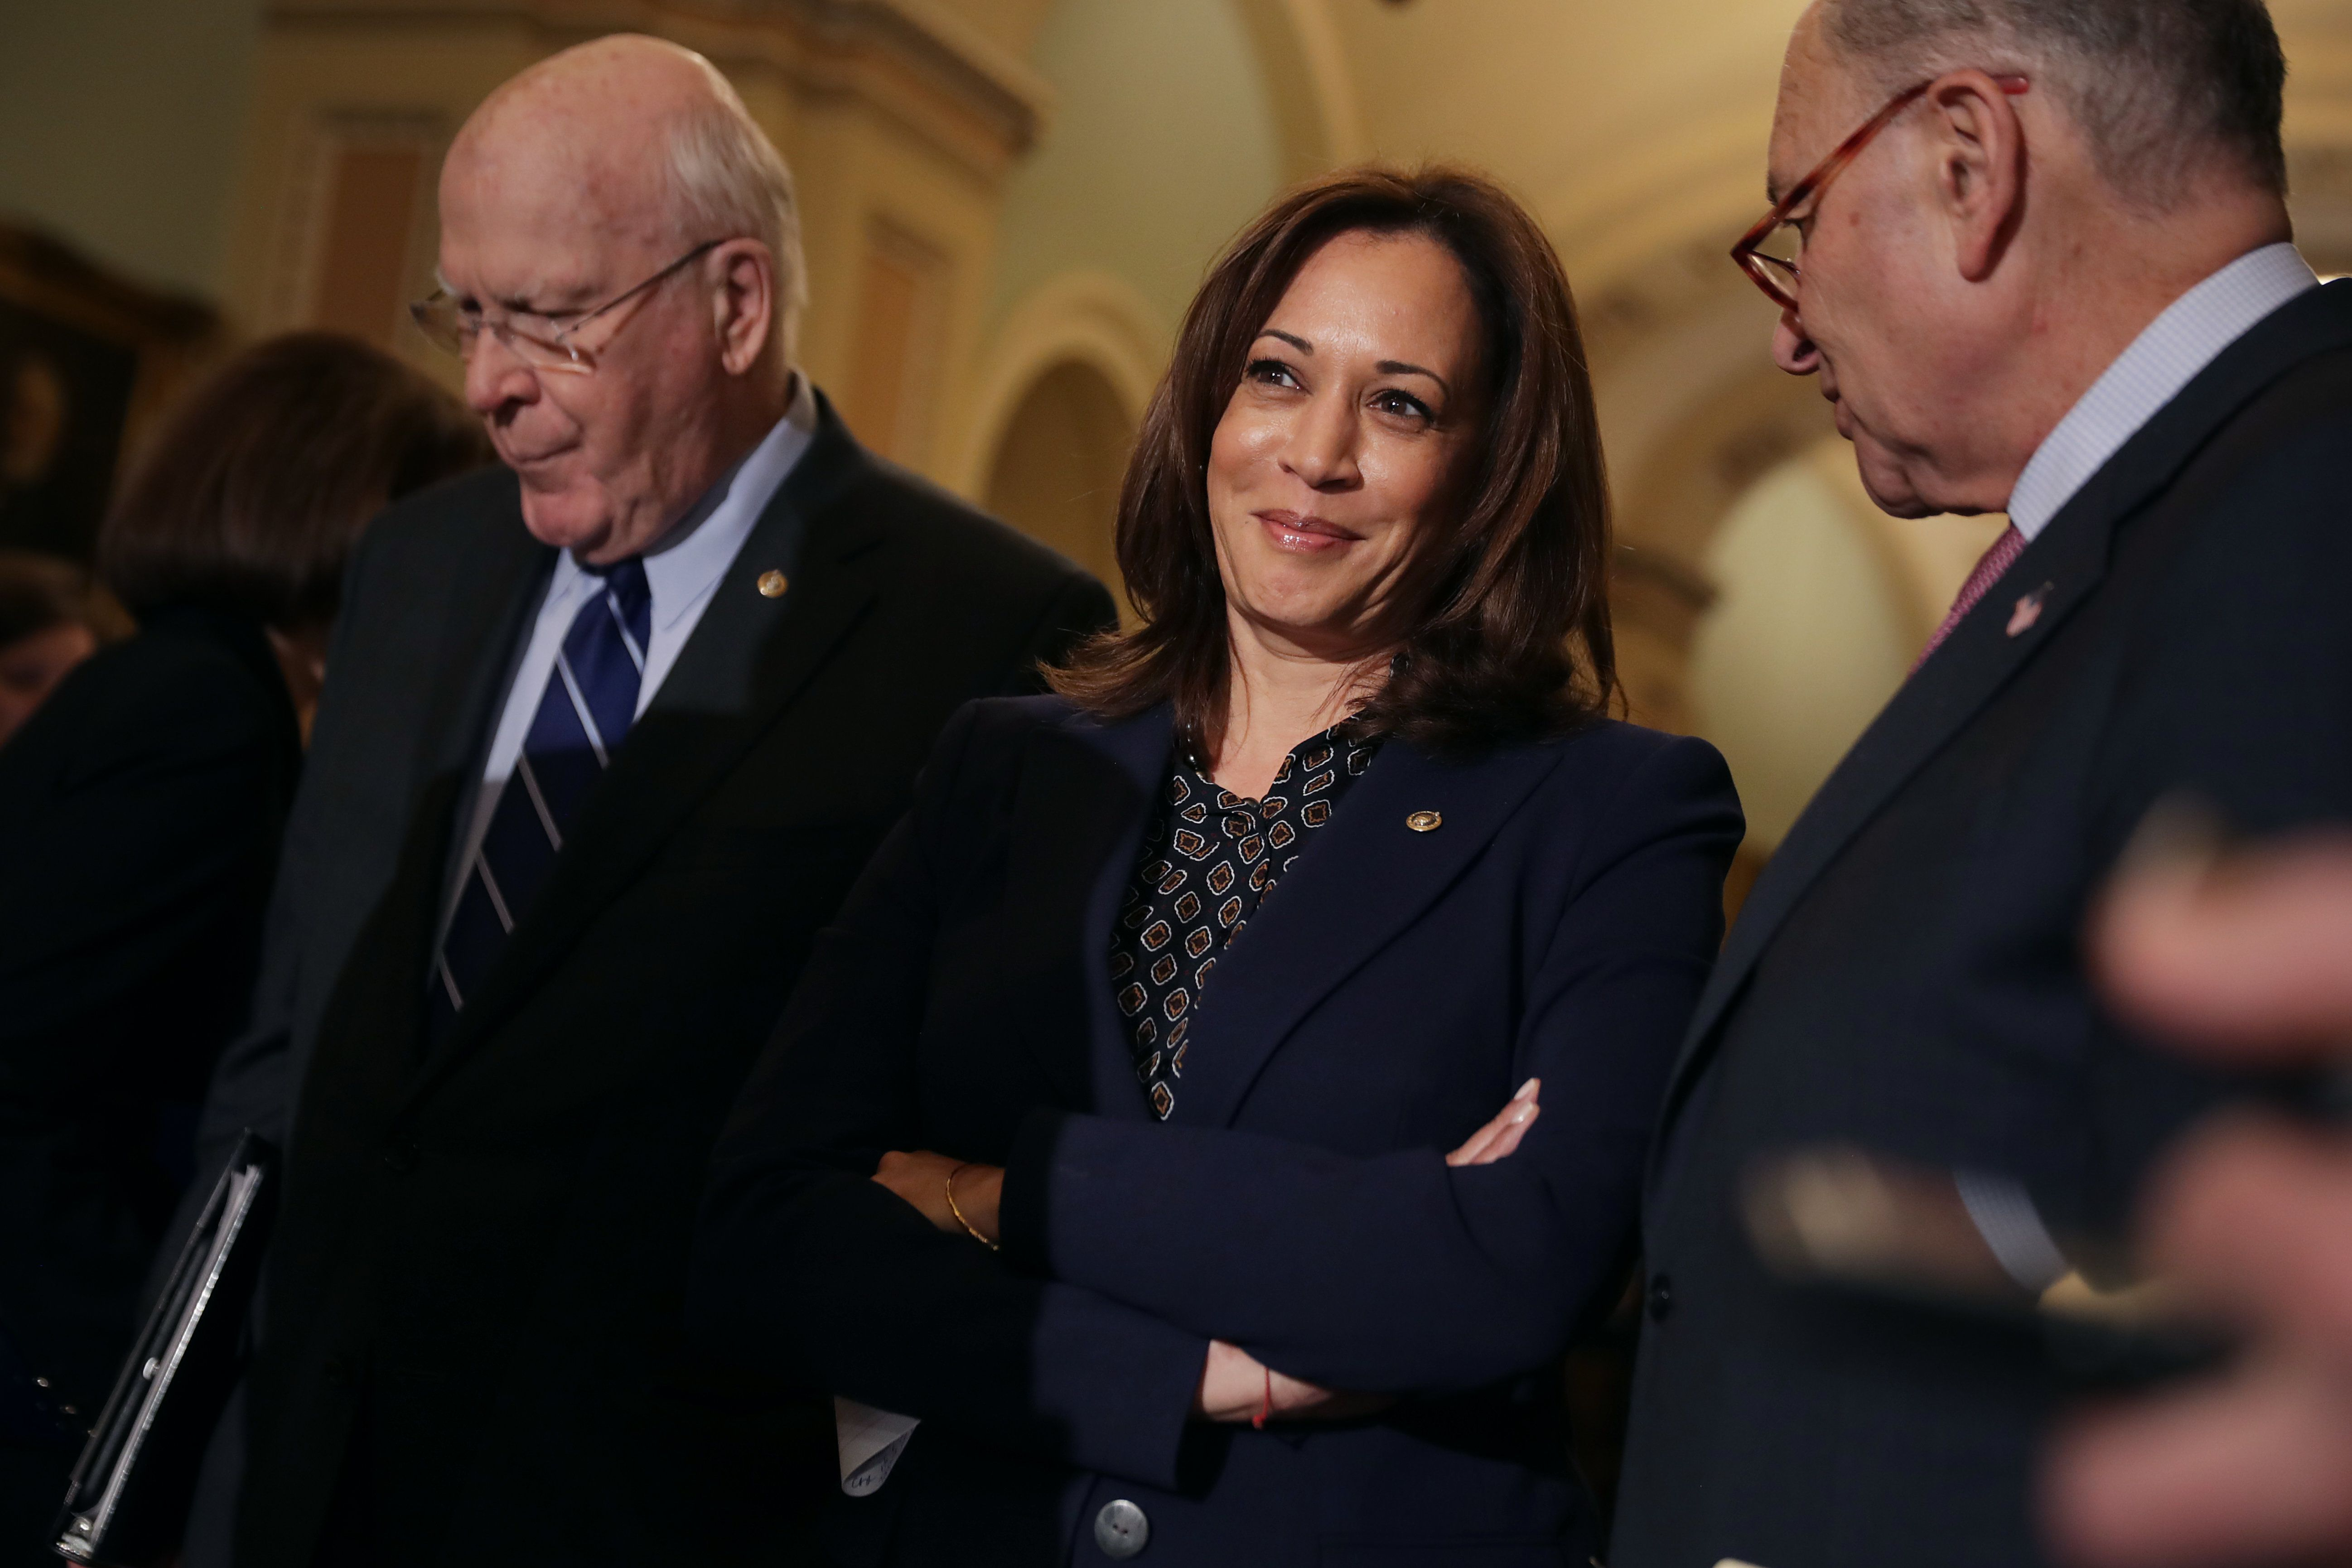 Kamala Harris To Decide On 2020 White House Run 'Over The